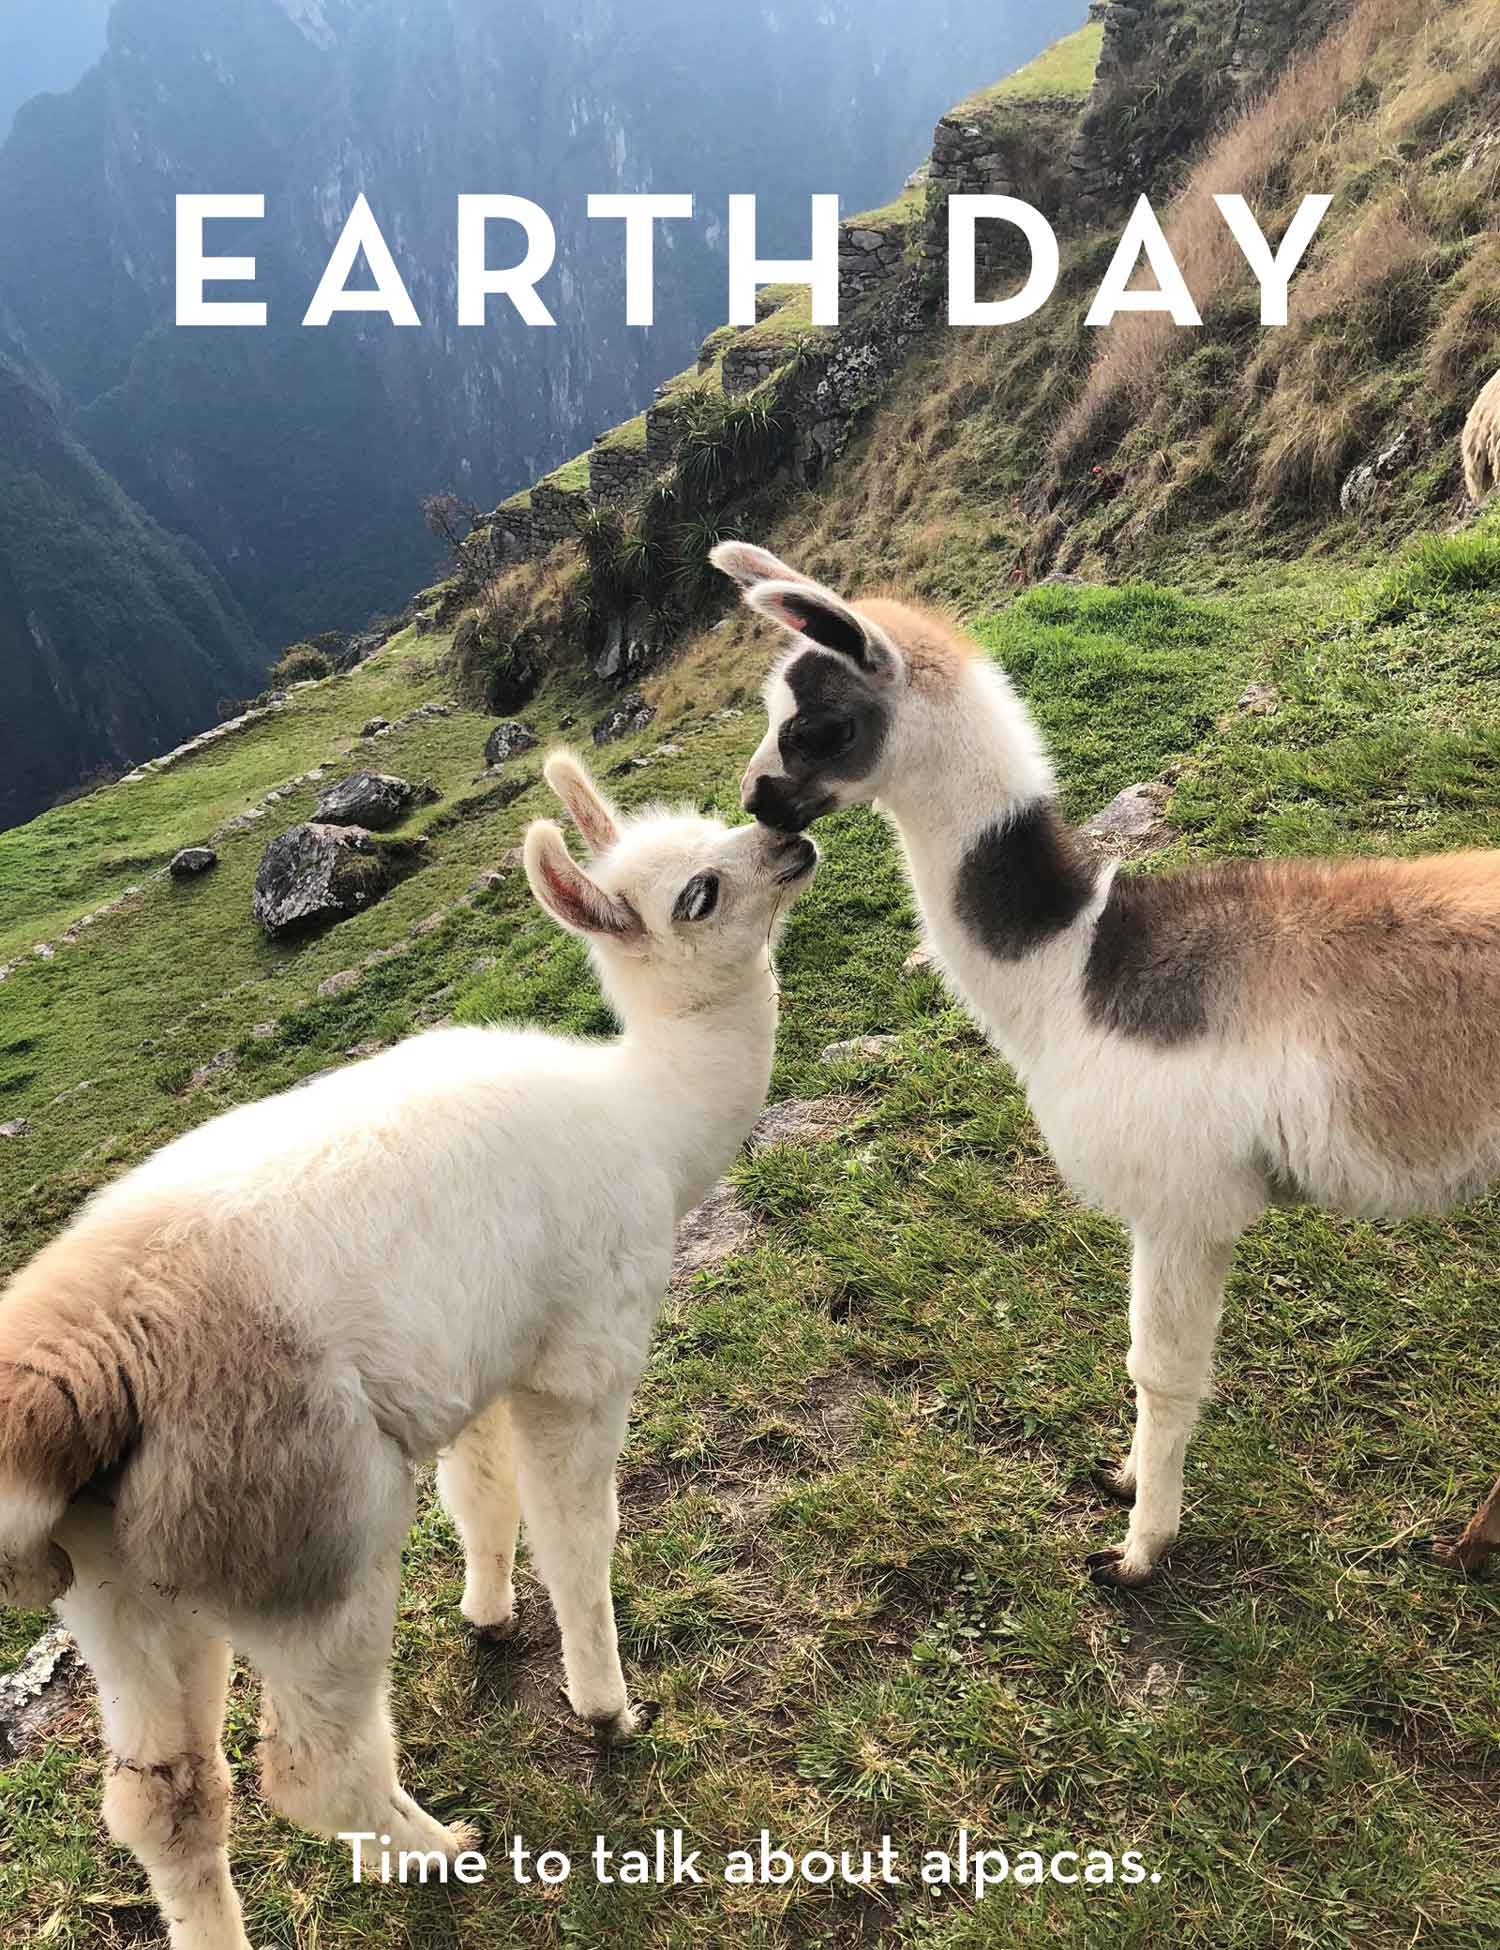 Earth Day - Alpacas of the South American Highlands and How You Can Help